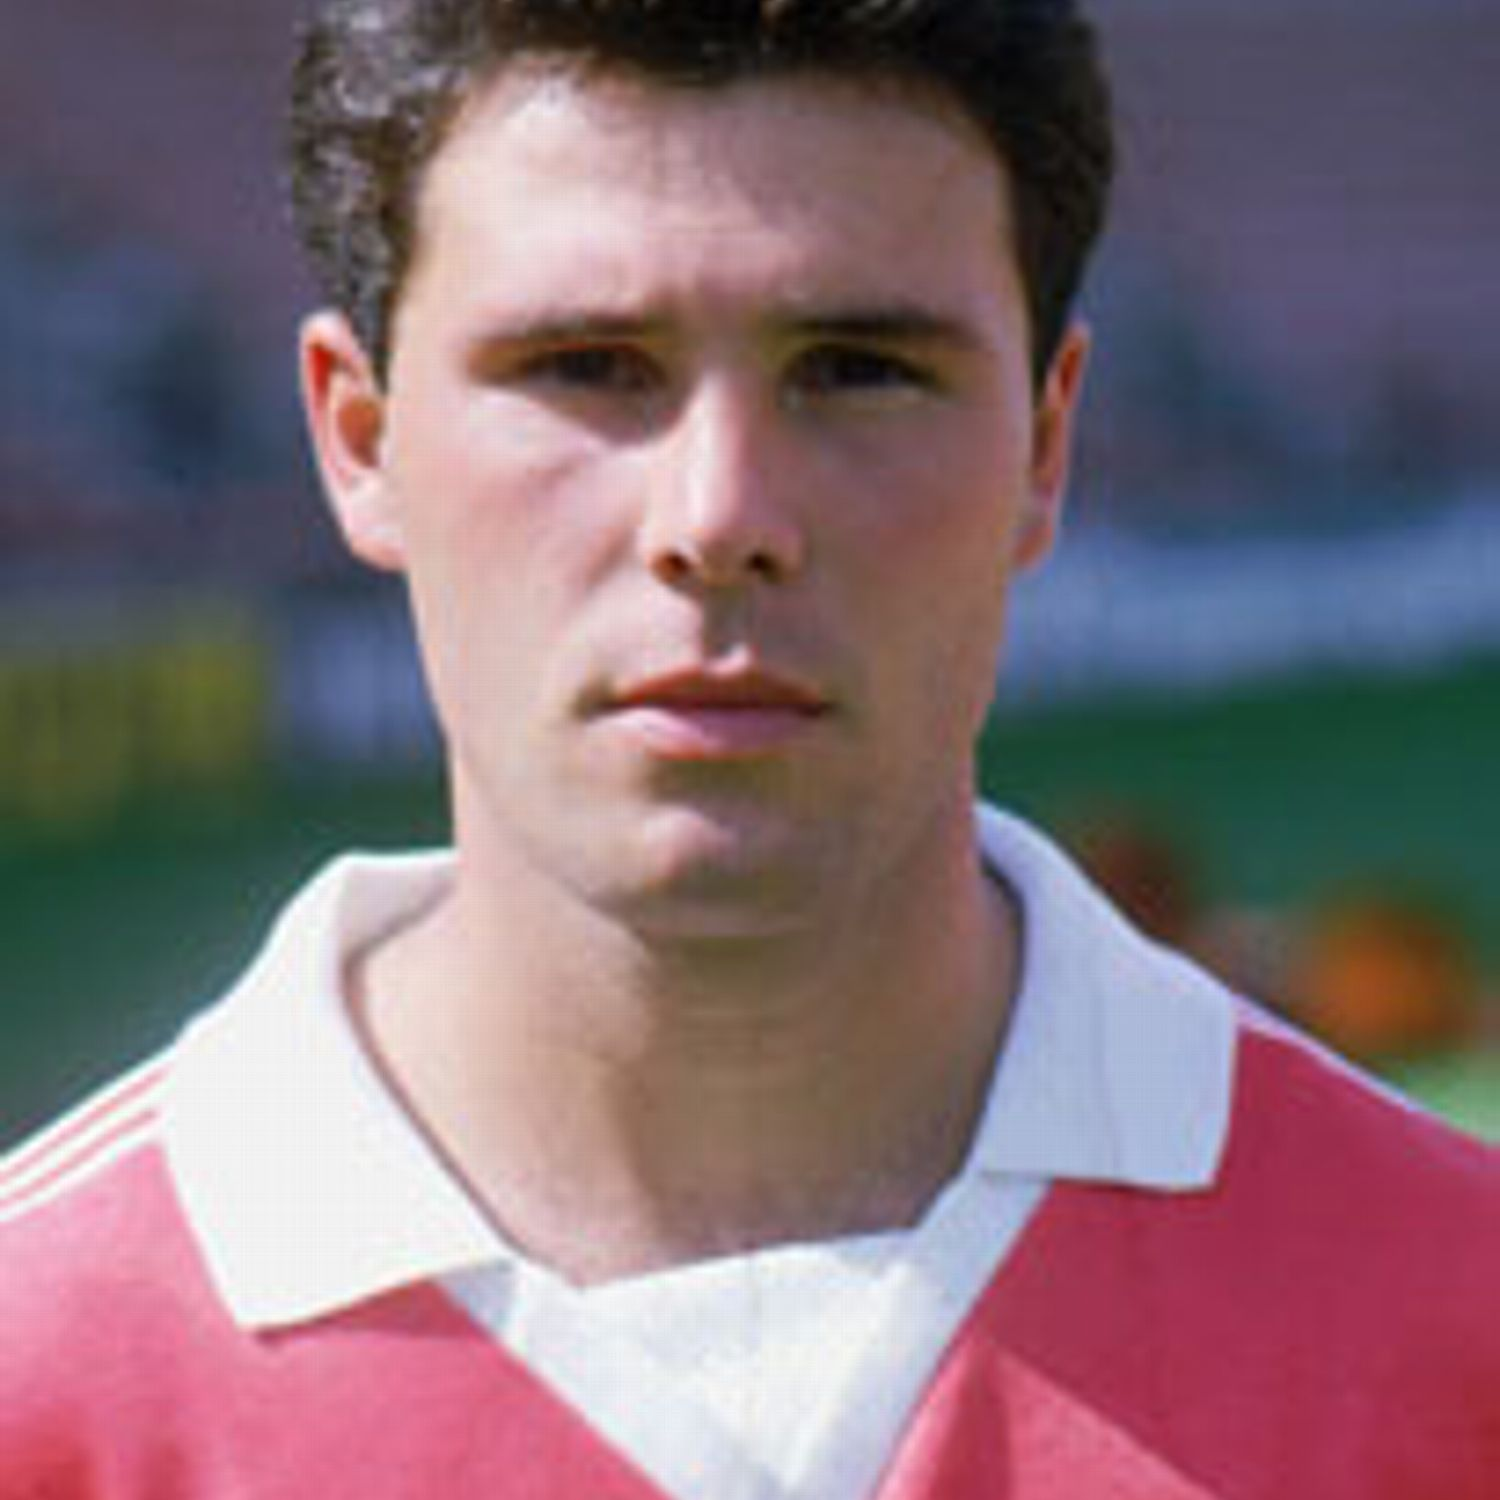 Epl Matches Live On Rcti Indonesia Tv Channel: Rewind To 1995: The Bosman Effect